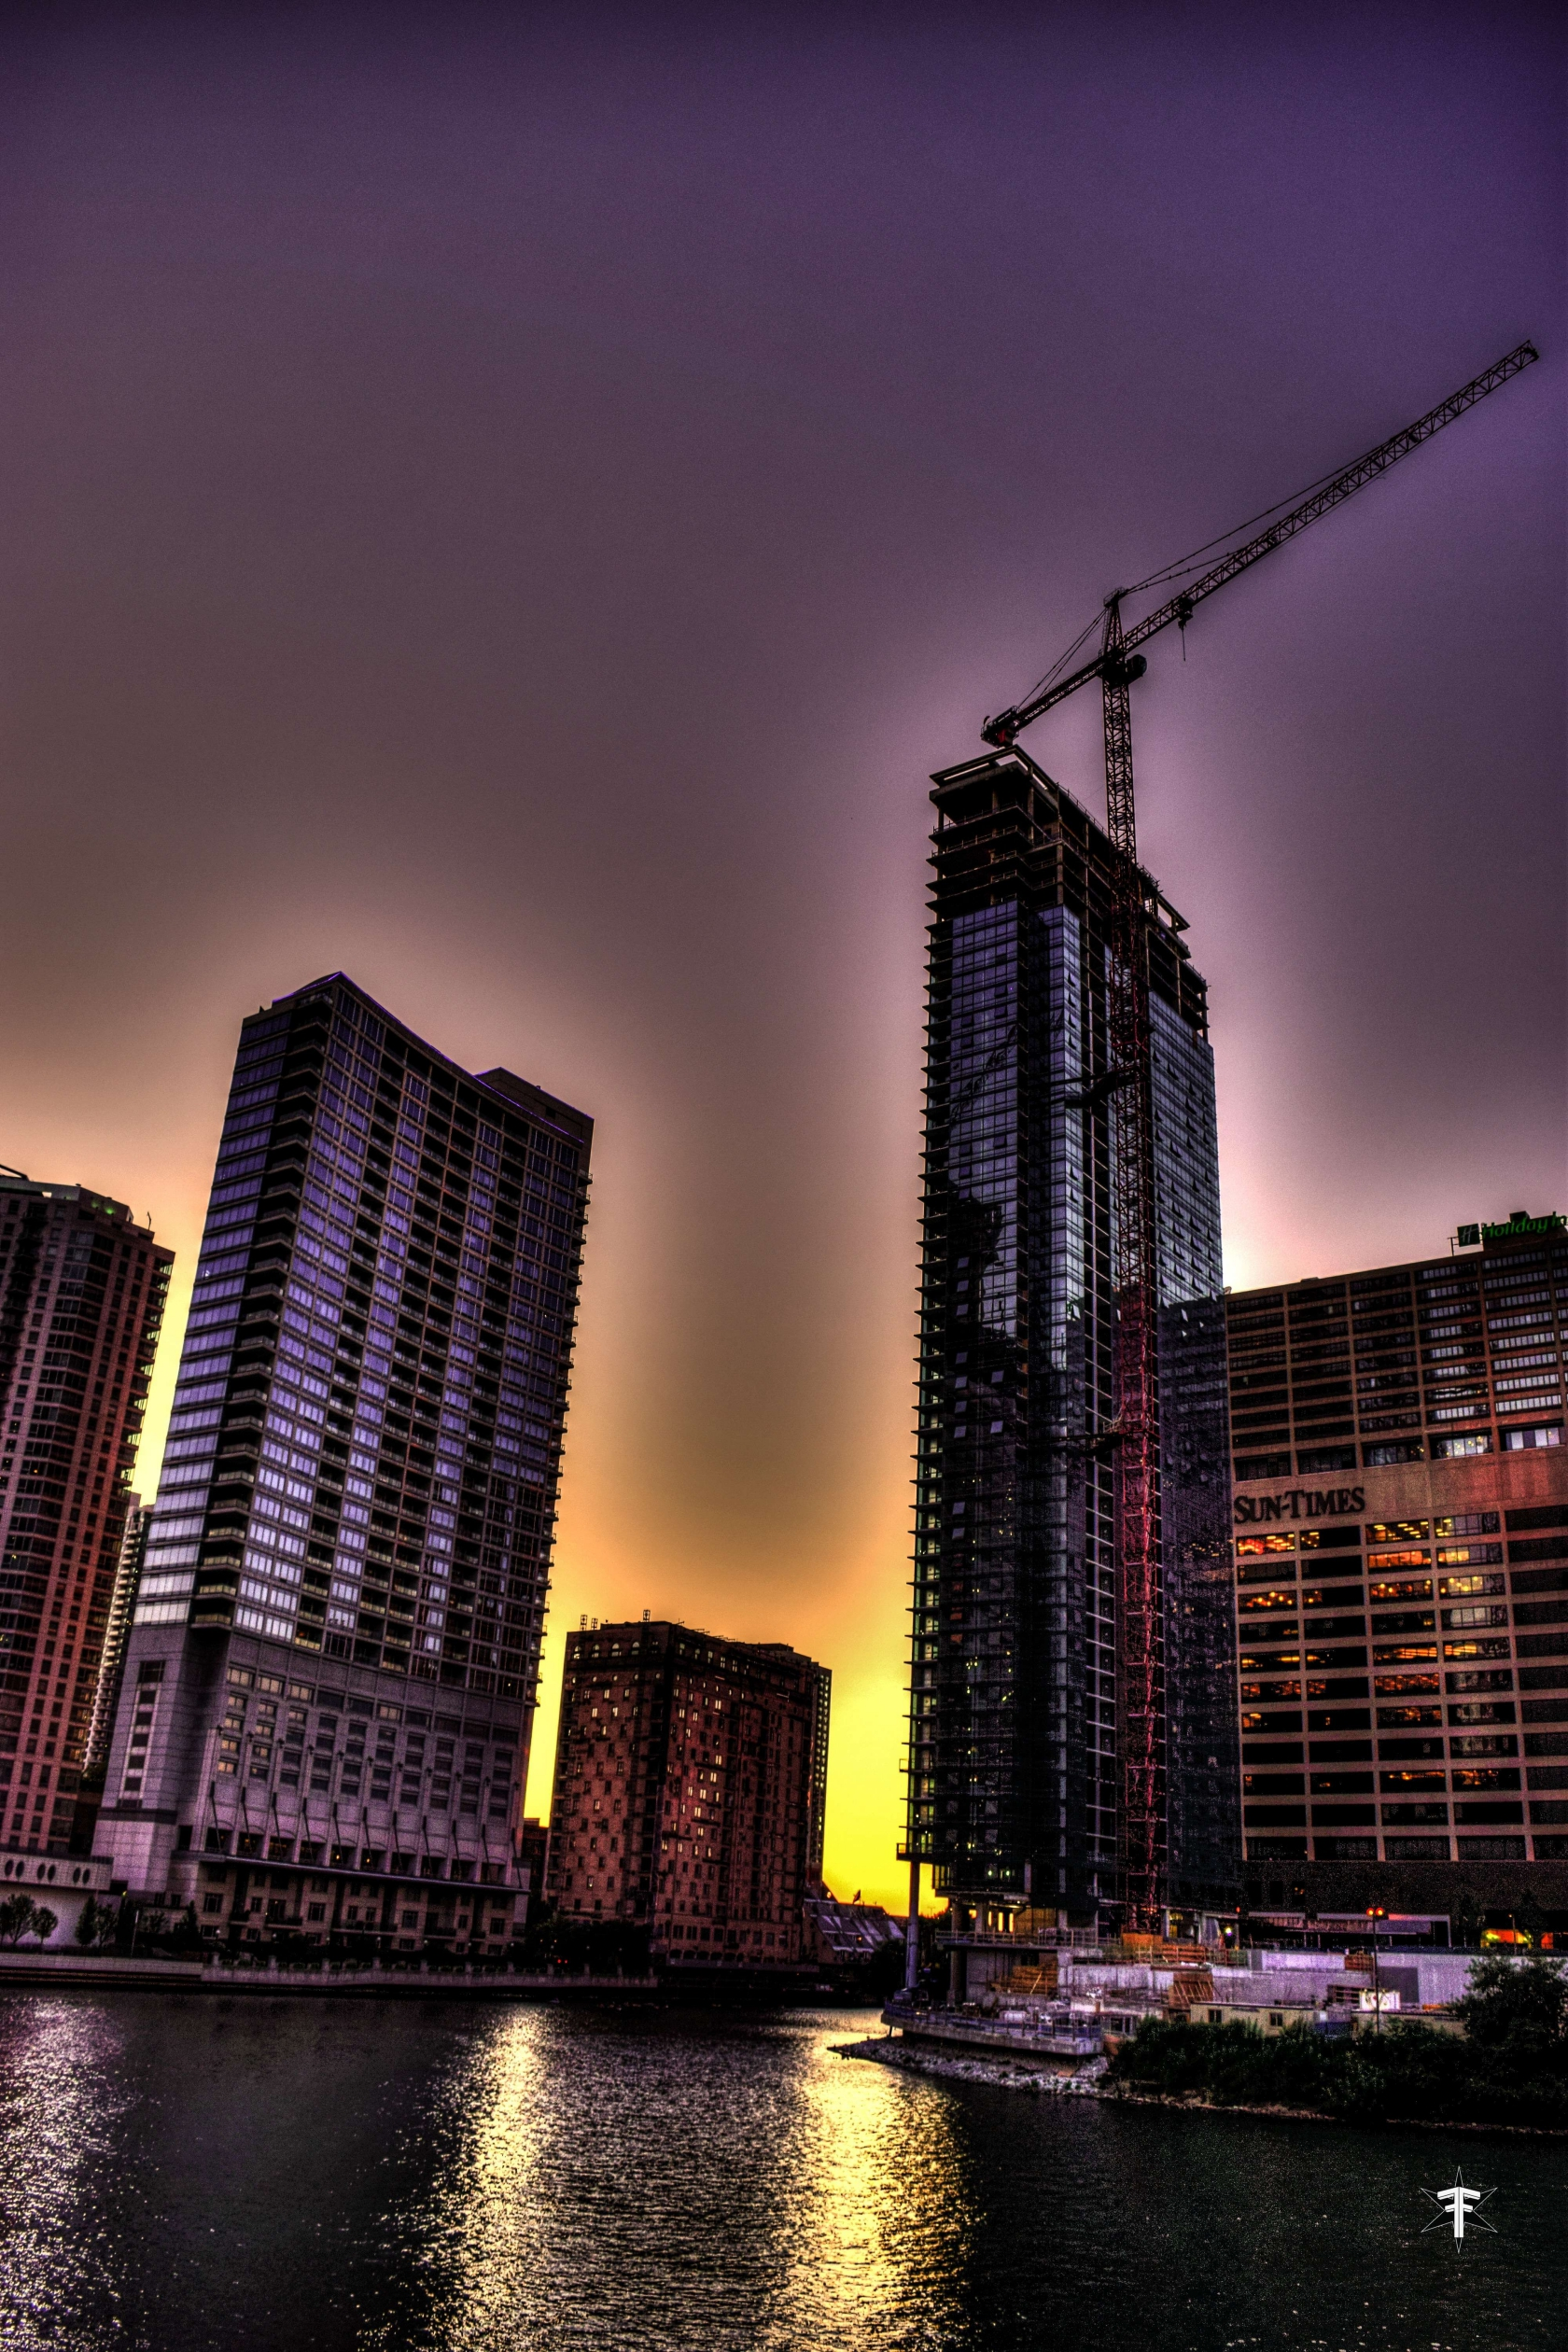 batch_wolf point construction building chicago color saturated art.jpg